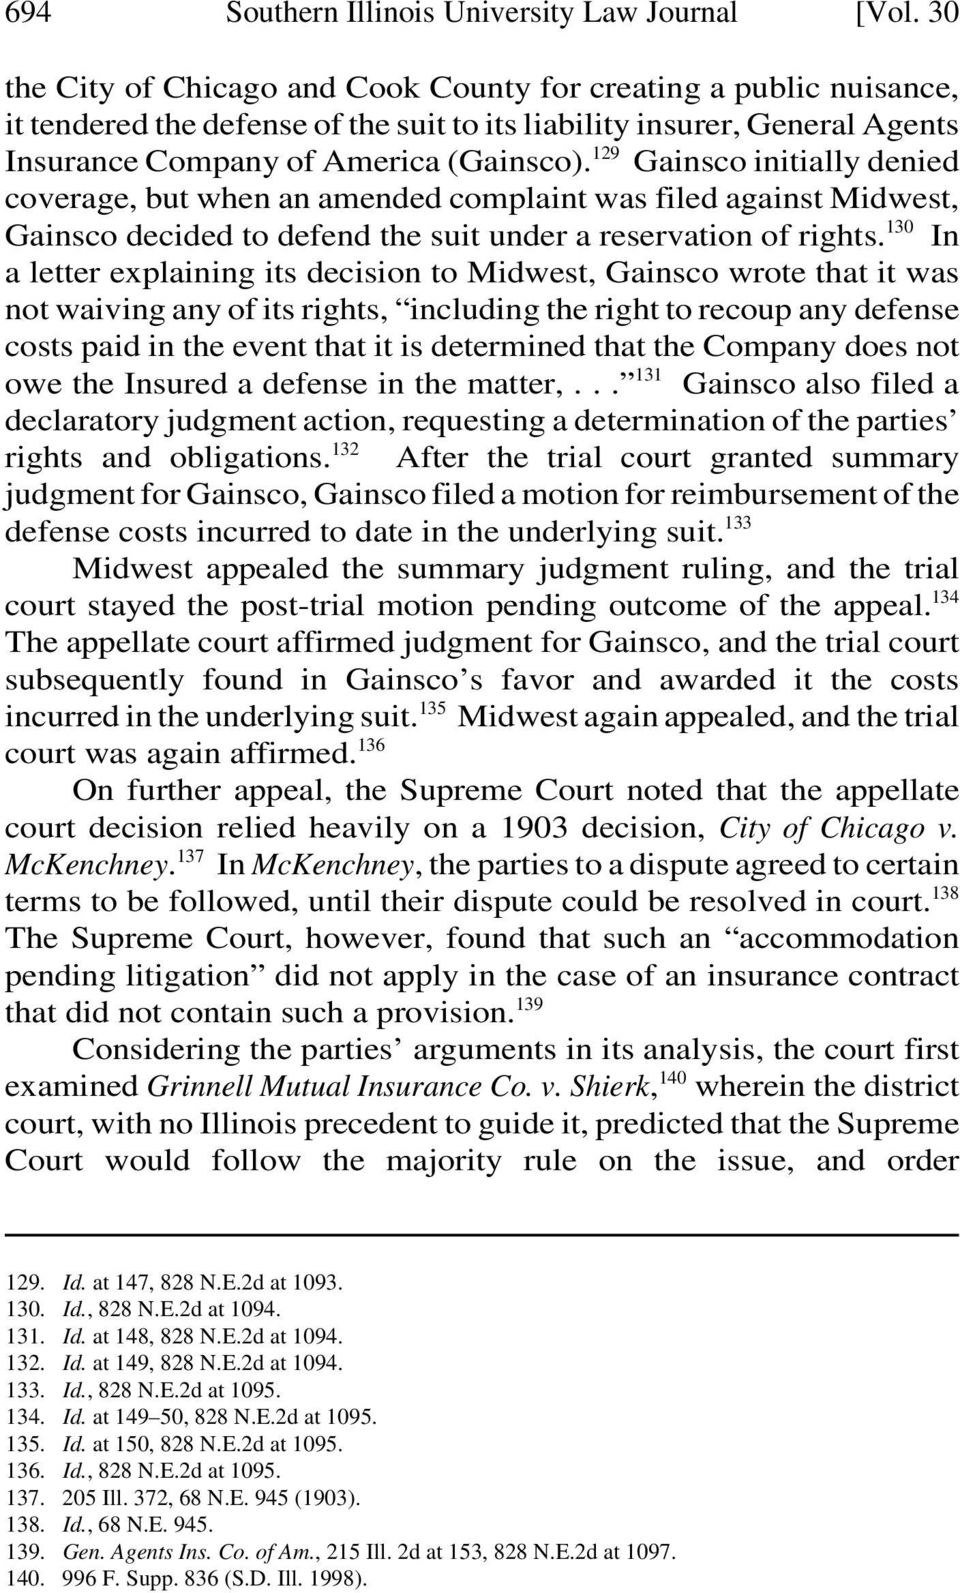 129 Gainsco initially denied coverage, but when an amended complaint was filed against Midwest, Gainsco decided to defend the suit under a reservation of rights.